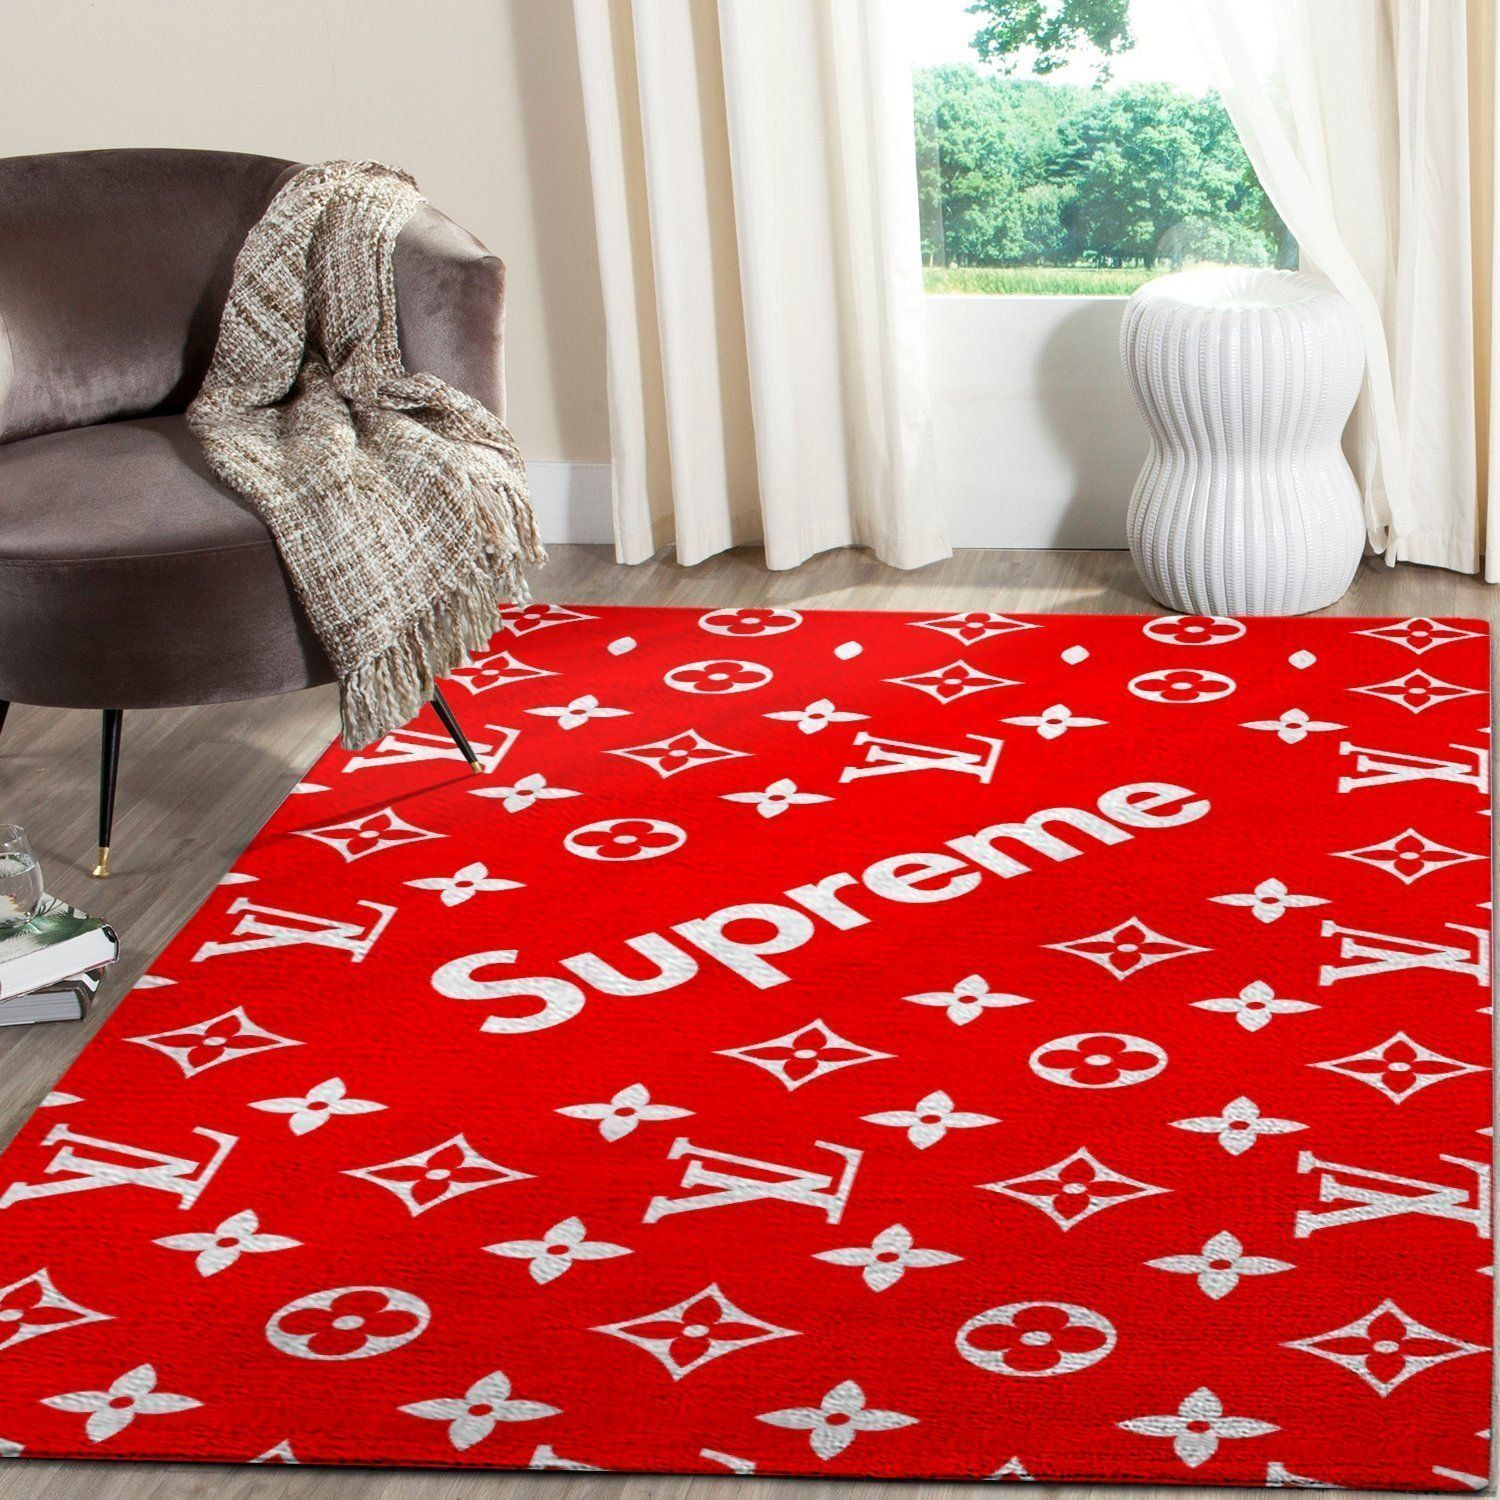 Louis Vuitton Supreme Area Rug, Red Hypebeast Carpet, Luxurious Fashion Brand Logo Living Room  Rugs, Floor Decor 081123